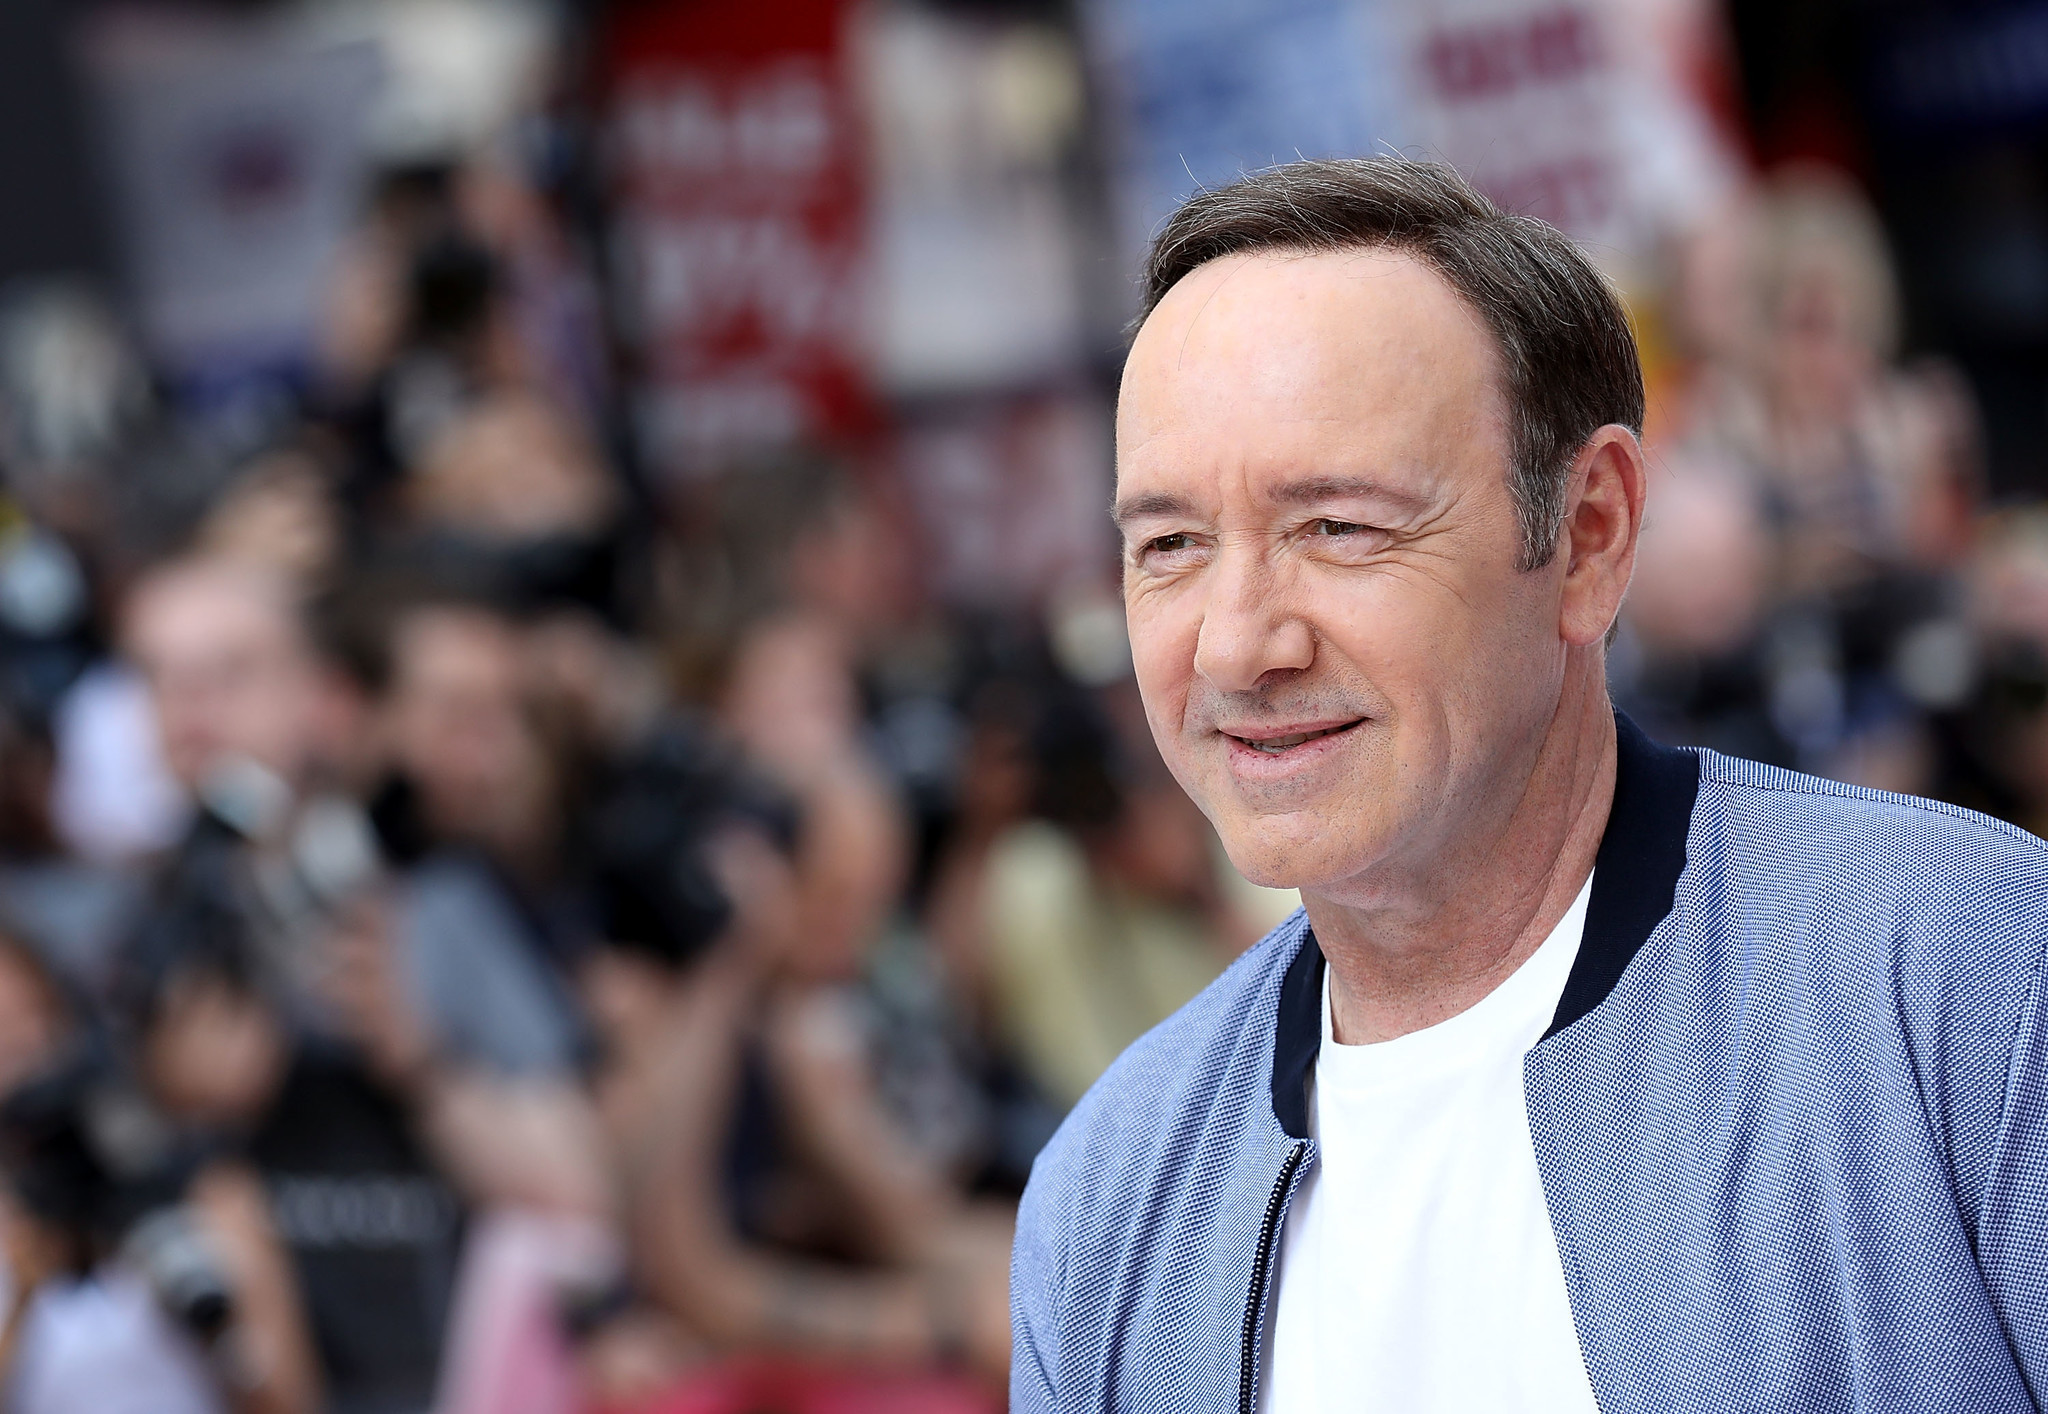 Kevin Spacey charged with sexually assaulting 18-year-old